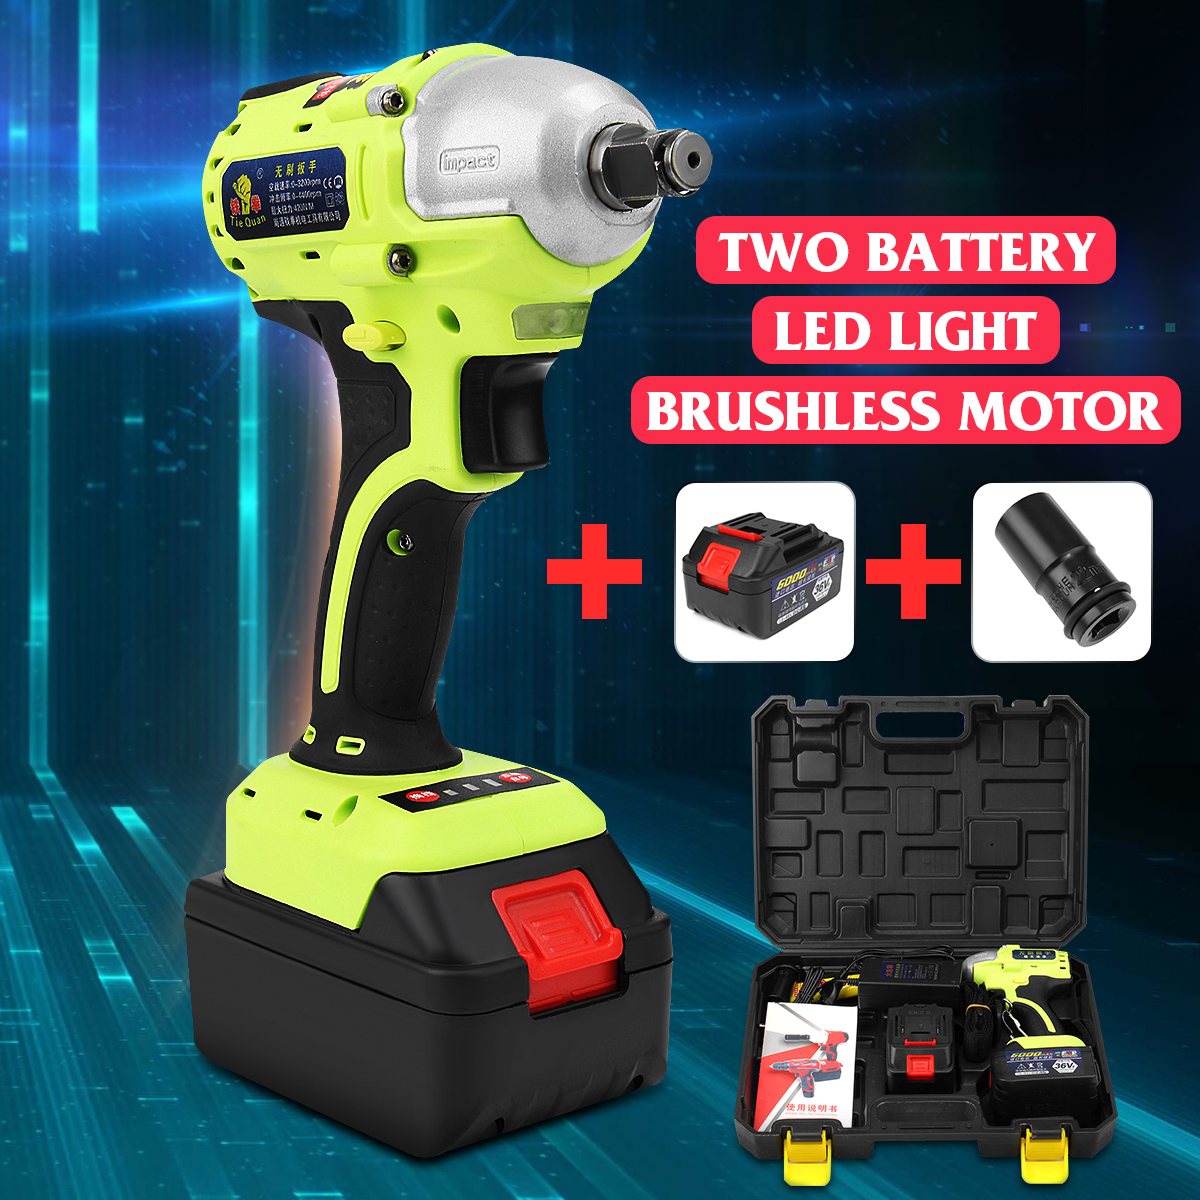 36V 1/2 inch 6000mAh Brushless Electric Wrench Cordless 2 Rechargeable Lithium Battery Hand Drill Installation Power Tools Kit taipower onda 8 inch 9 inch tablet pc battery 3 7v 6000mah 3 wire 2 wire lithium battery